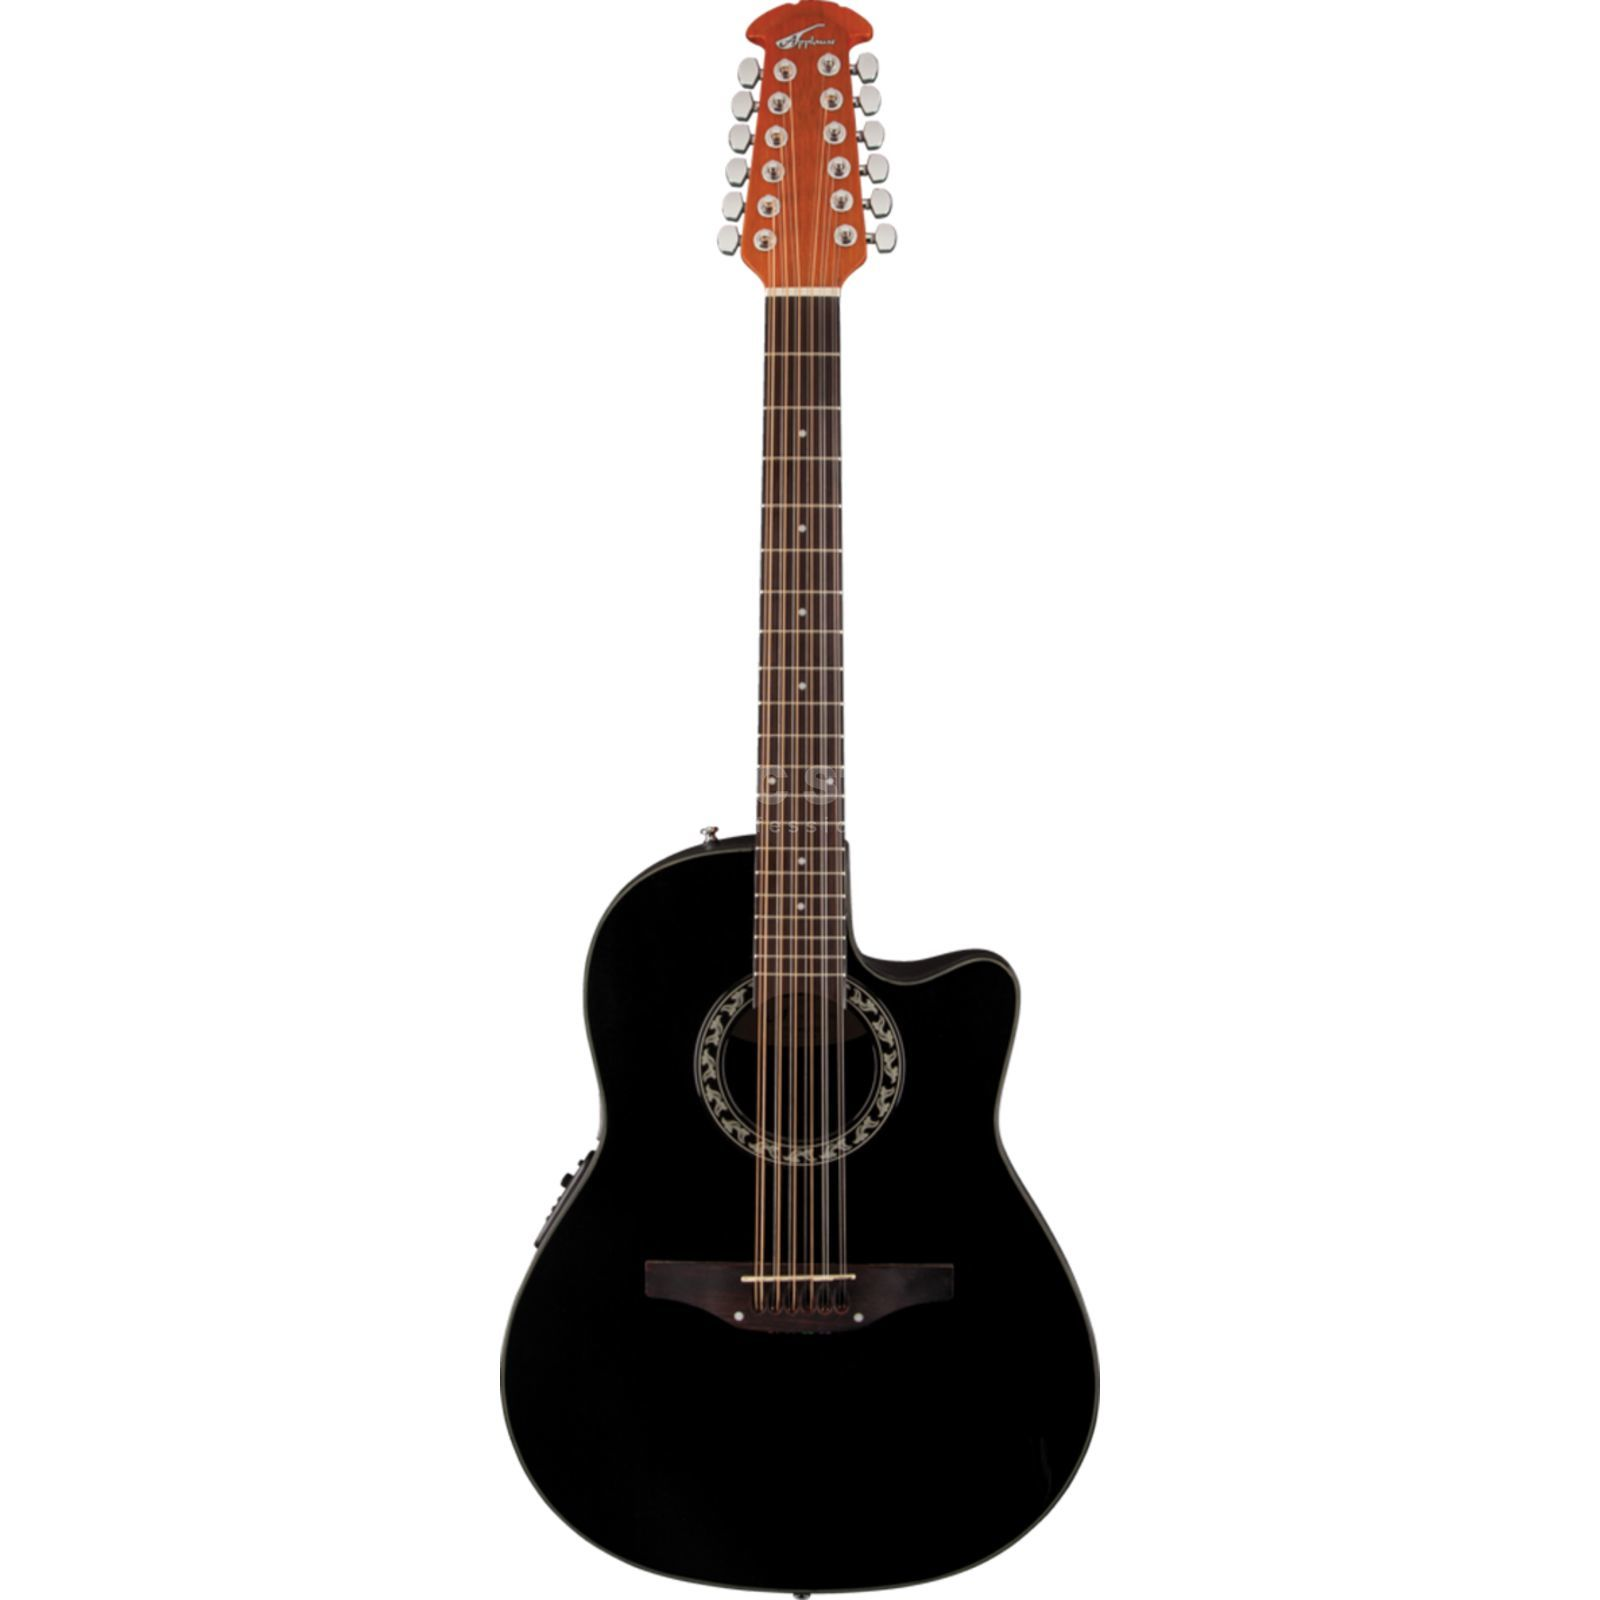 Ovation AB2412-5 Applause Balladeer BK 12 String, Black Produktbillede